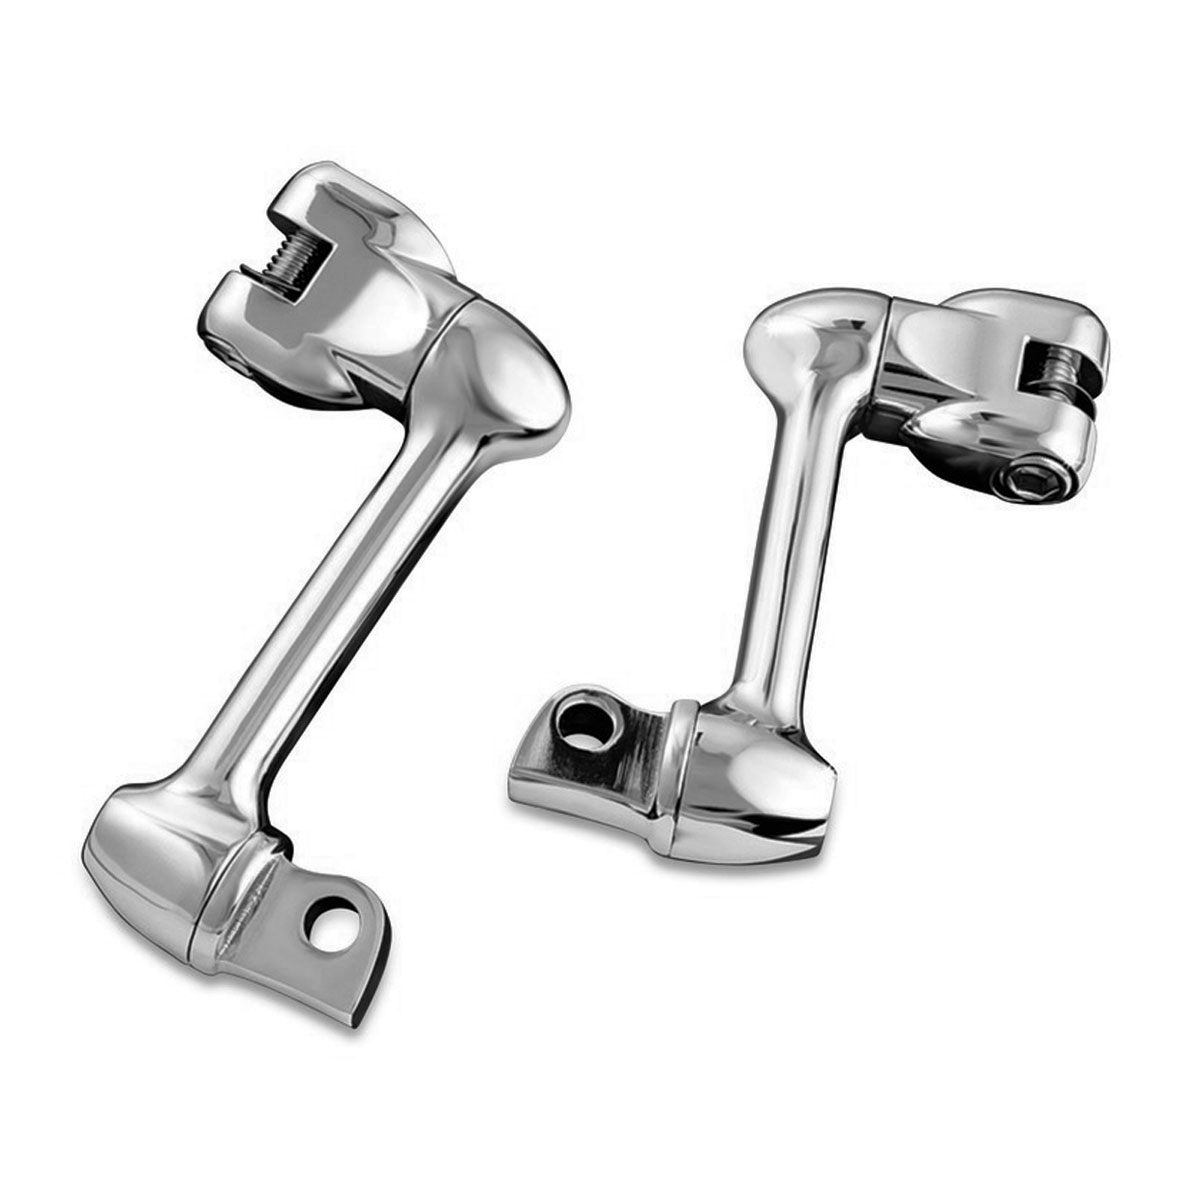 4″ Adjustable Lockable Offsets